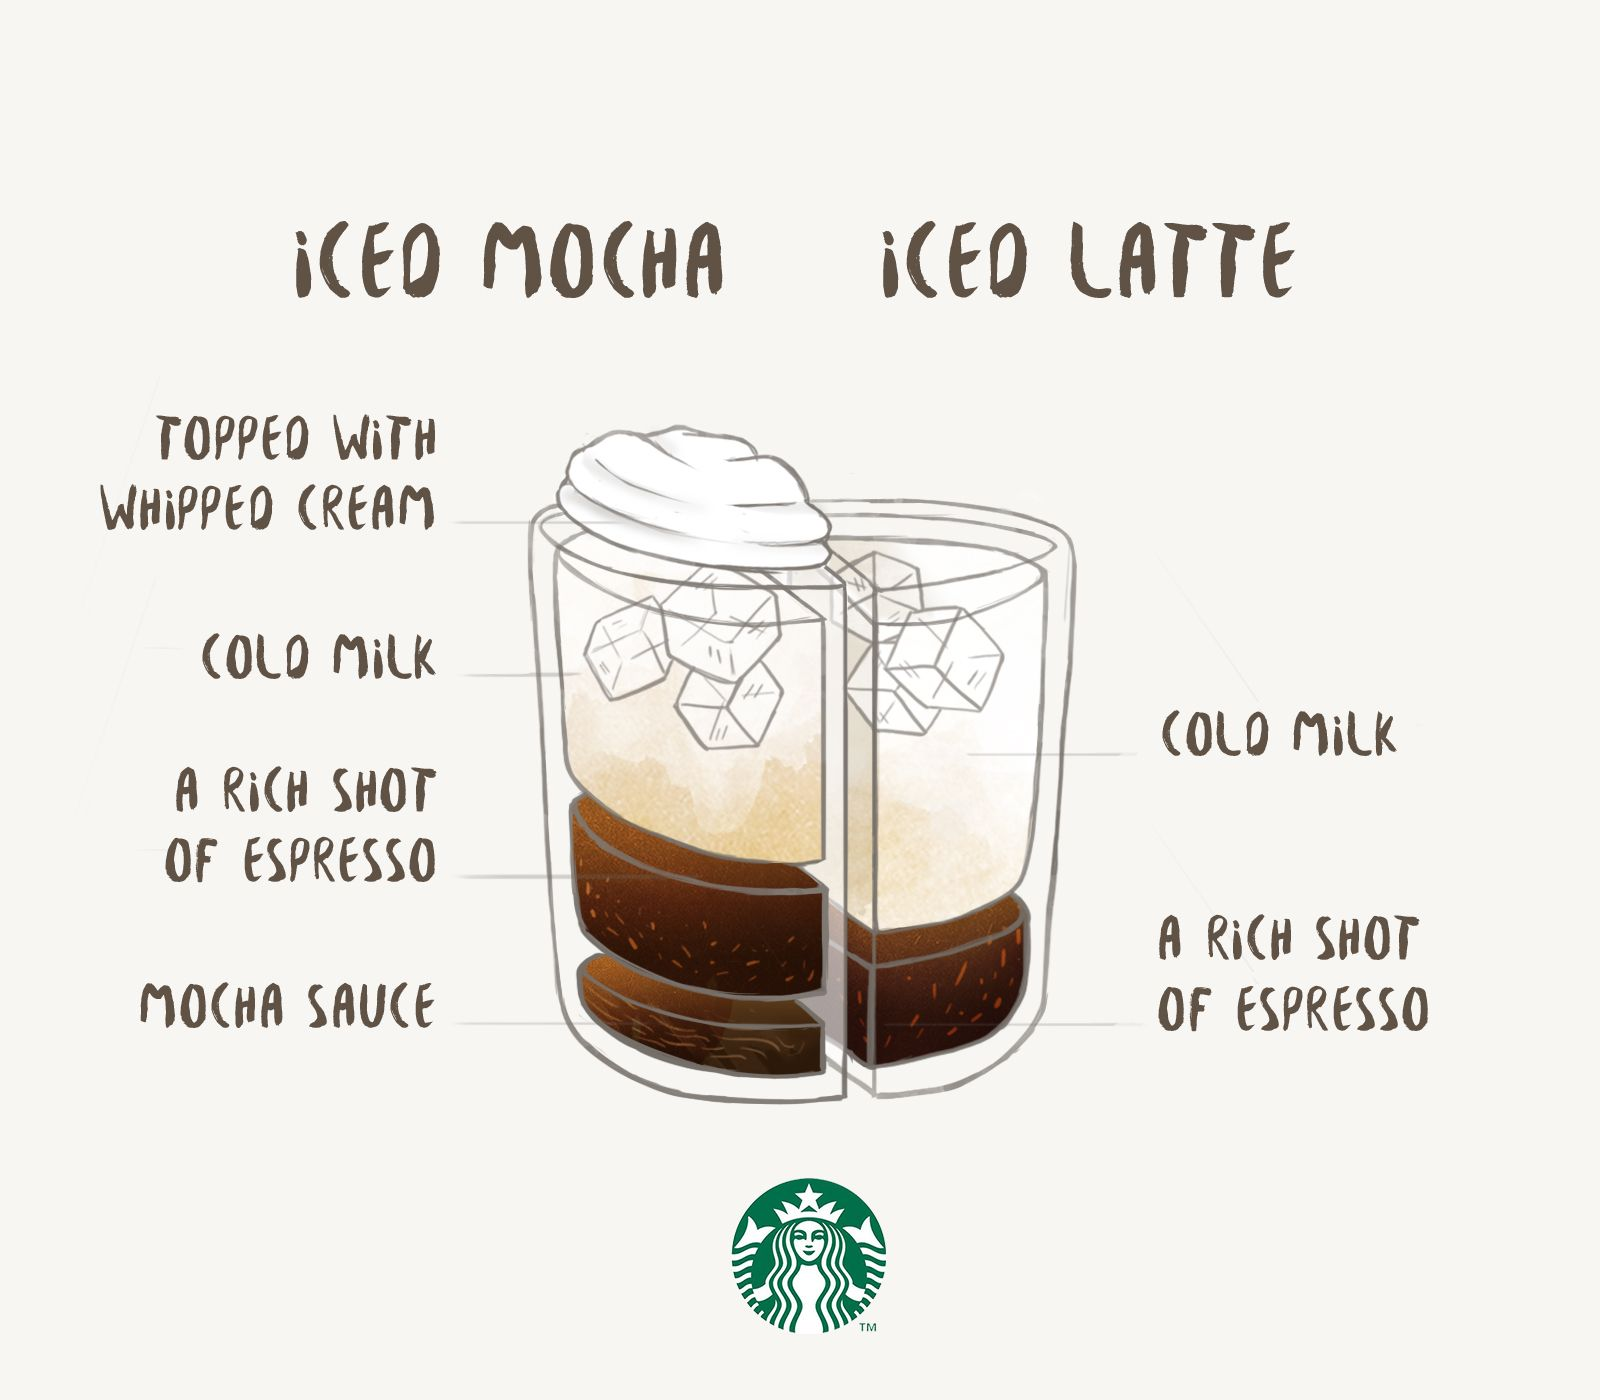 Two delicious ways to enjoy iced espresso with milk. An